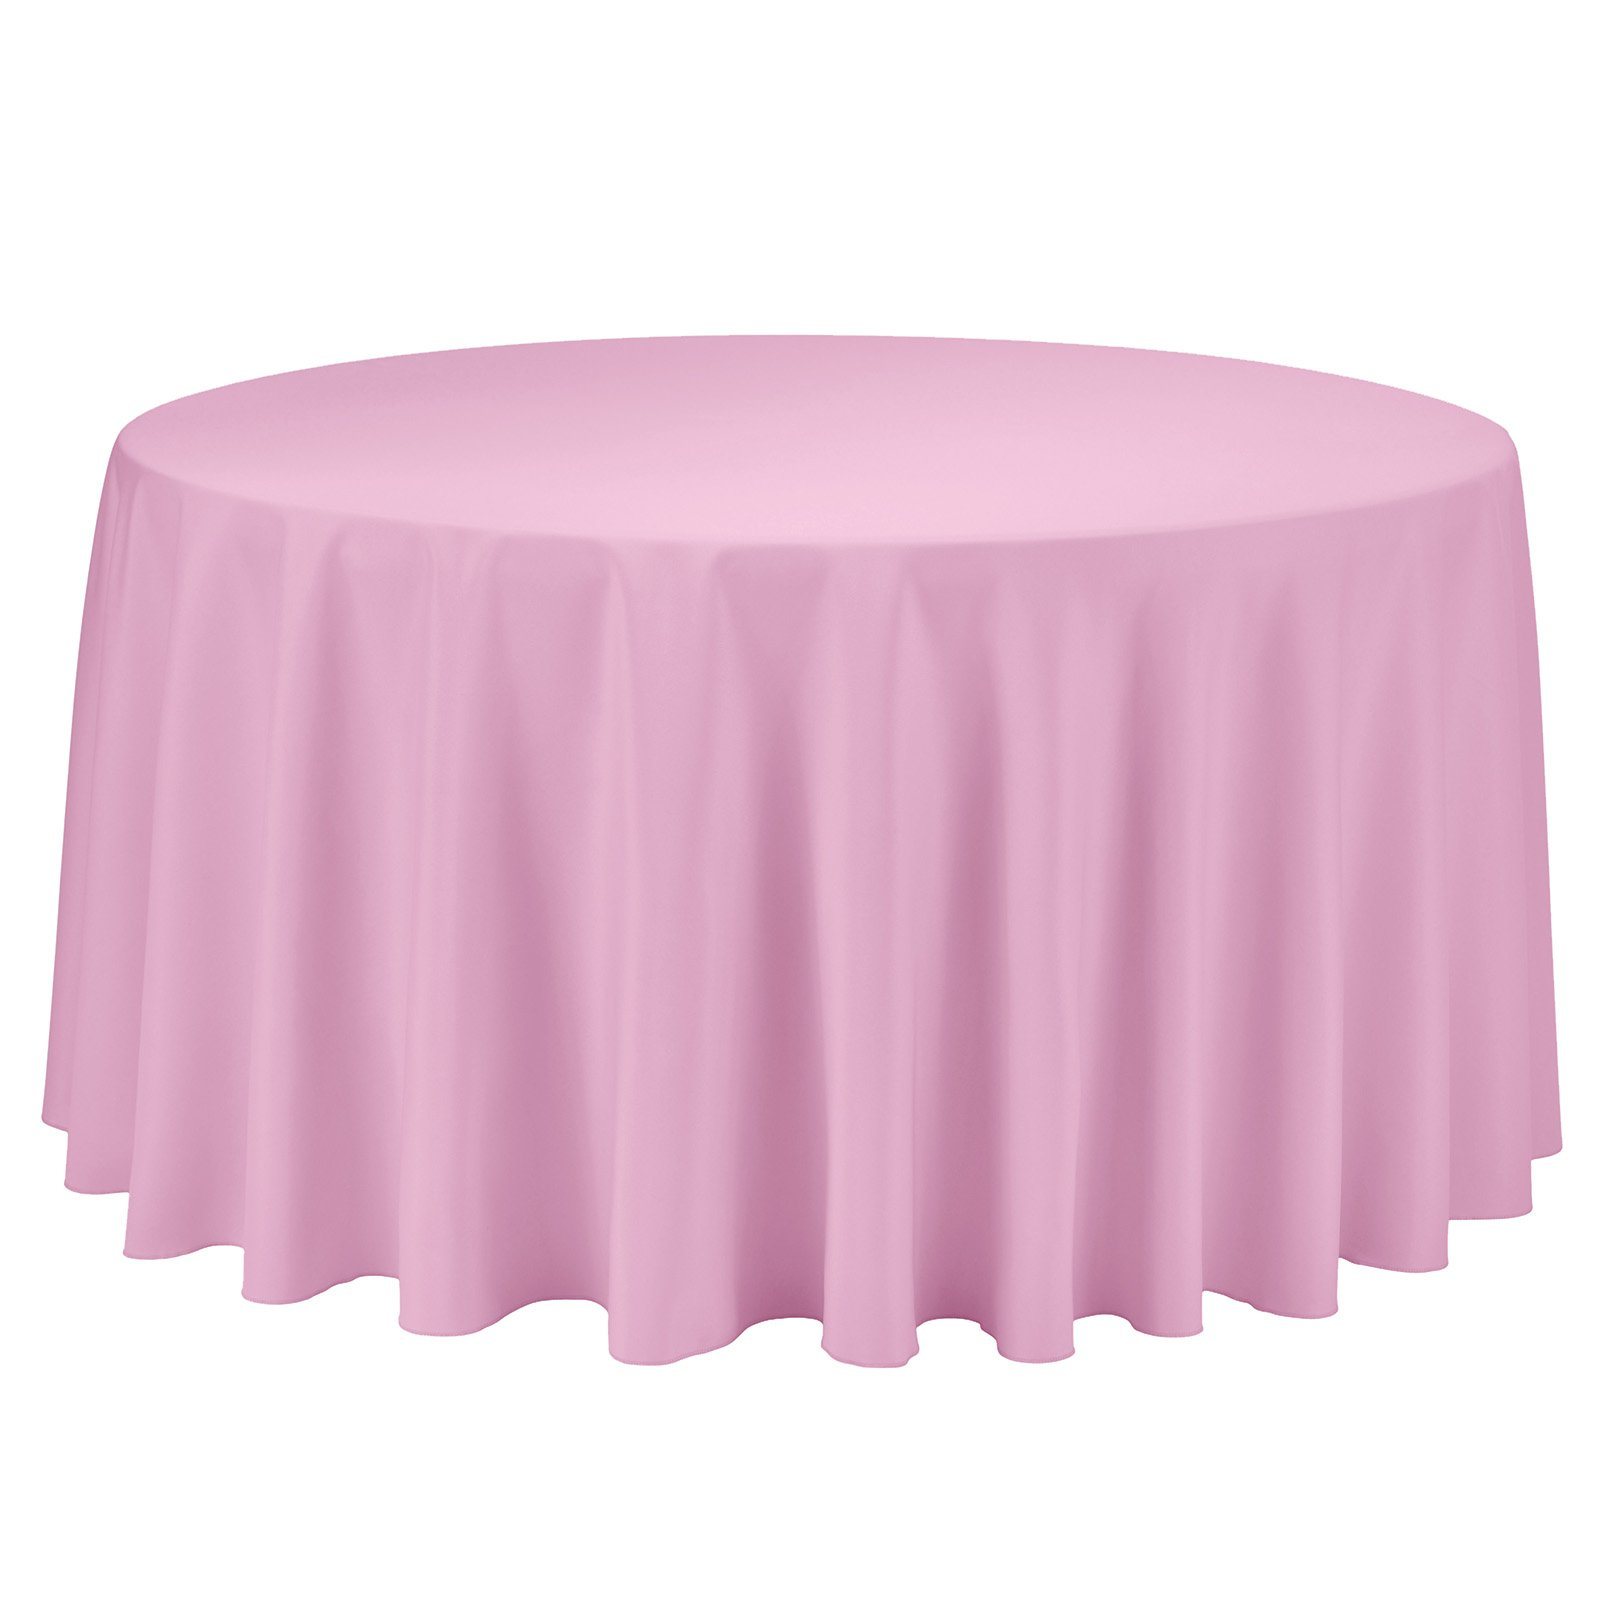 Remedios Round Tablecloth Solid Color Polyester Table Cloth for Bridal Shower Wedding Table – Wrinkle Free Dinner Tablecloth for Restaurant Party Banquet (Pink, 108 inch)